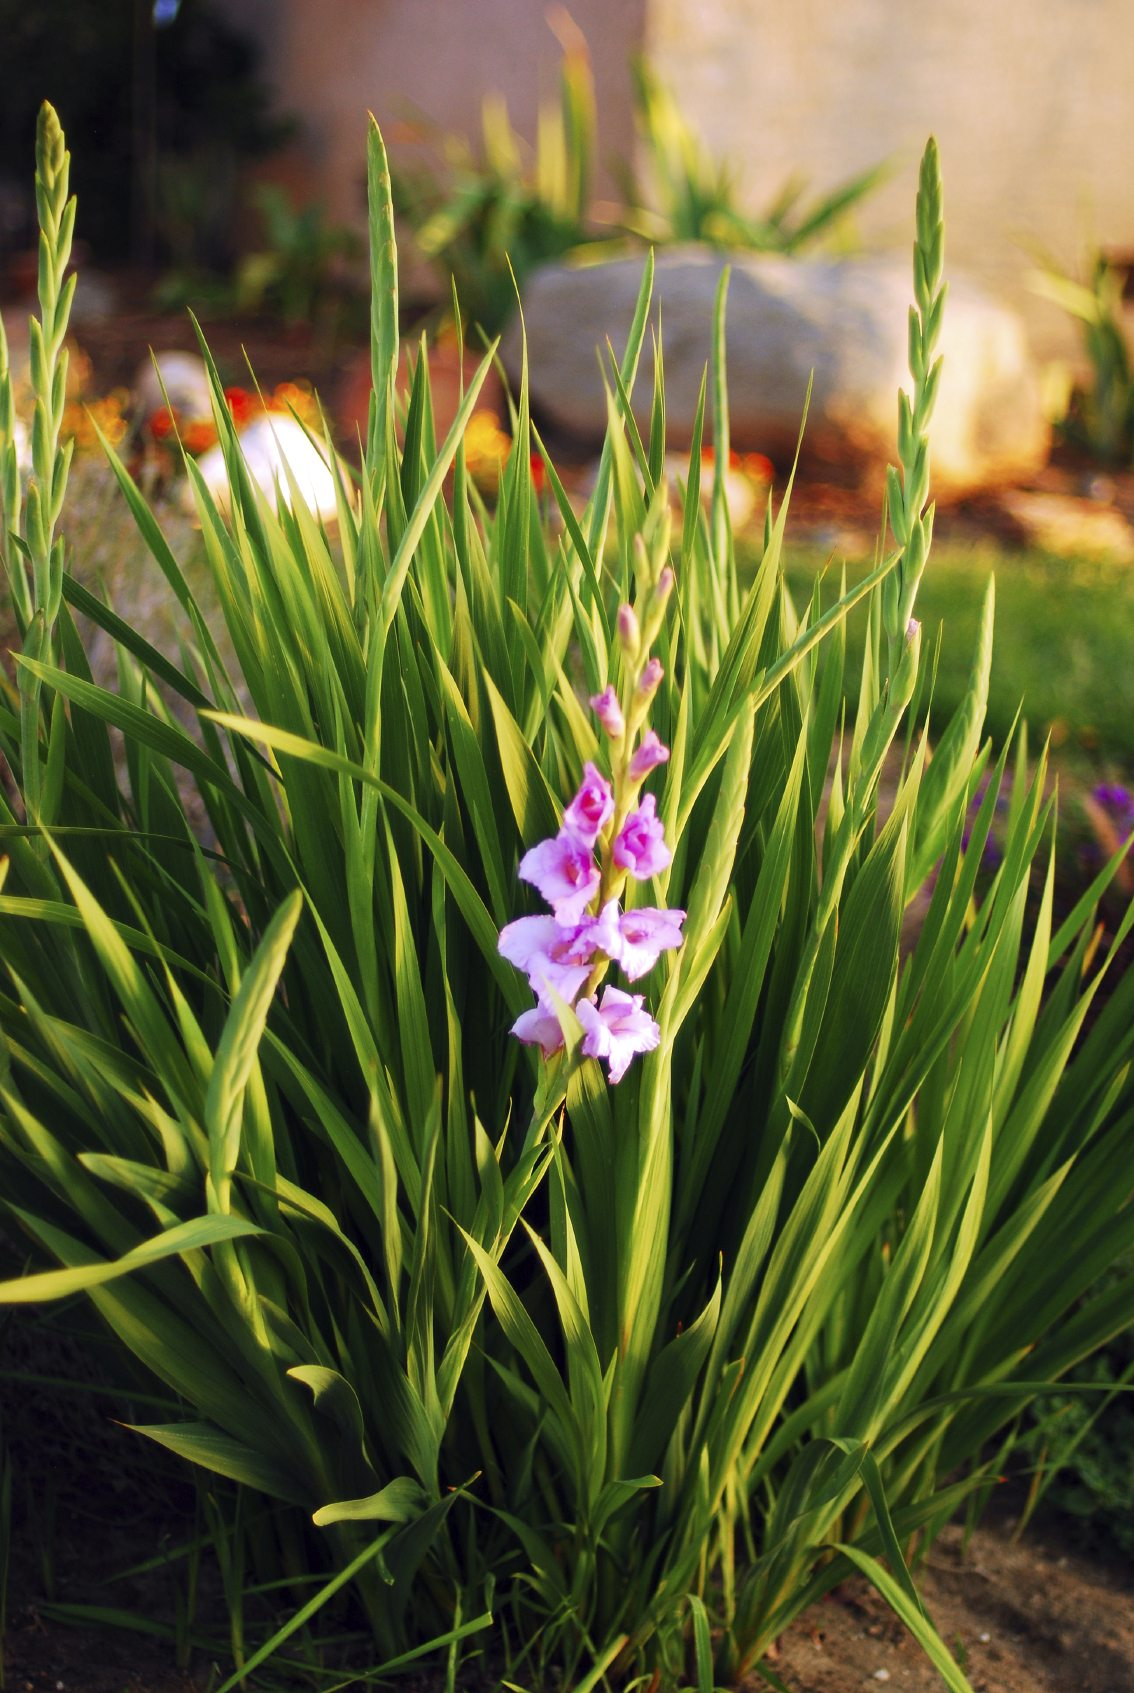 Pruning Back Gladiolus When And How To Trim Gladiolus Leaves